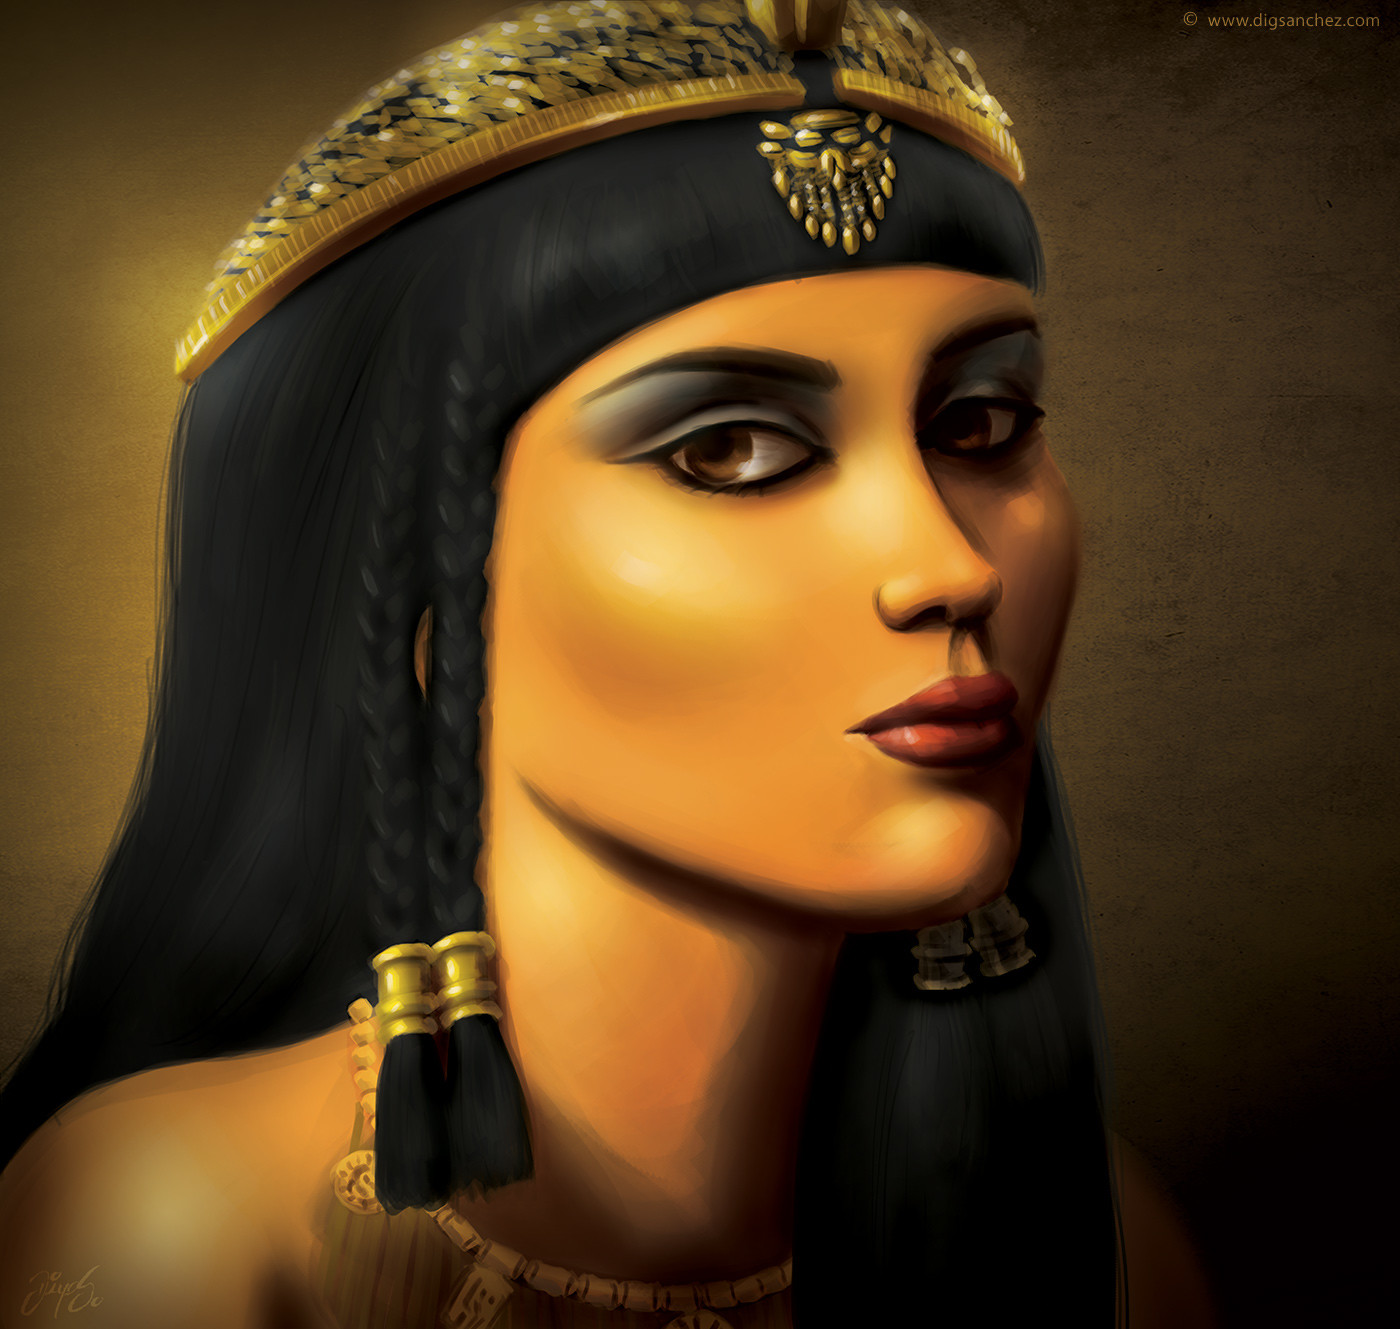 Card character - Cleopatra